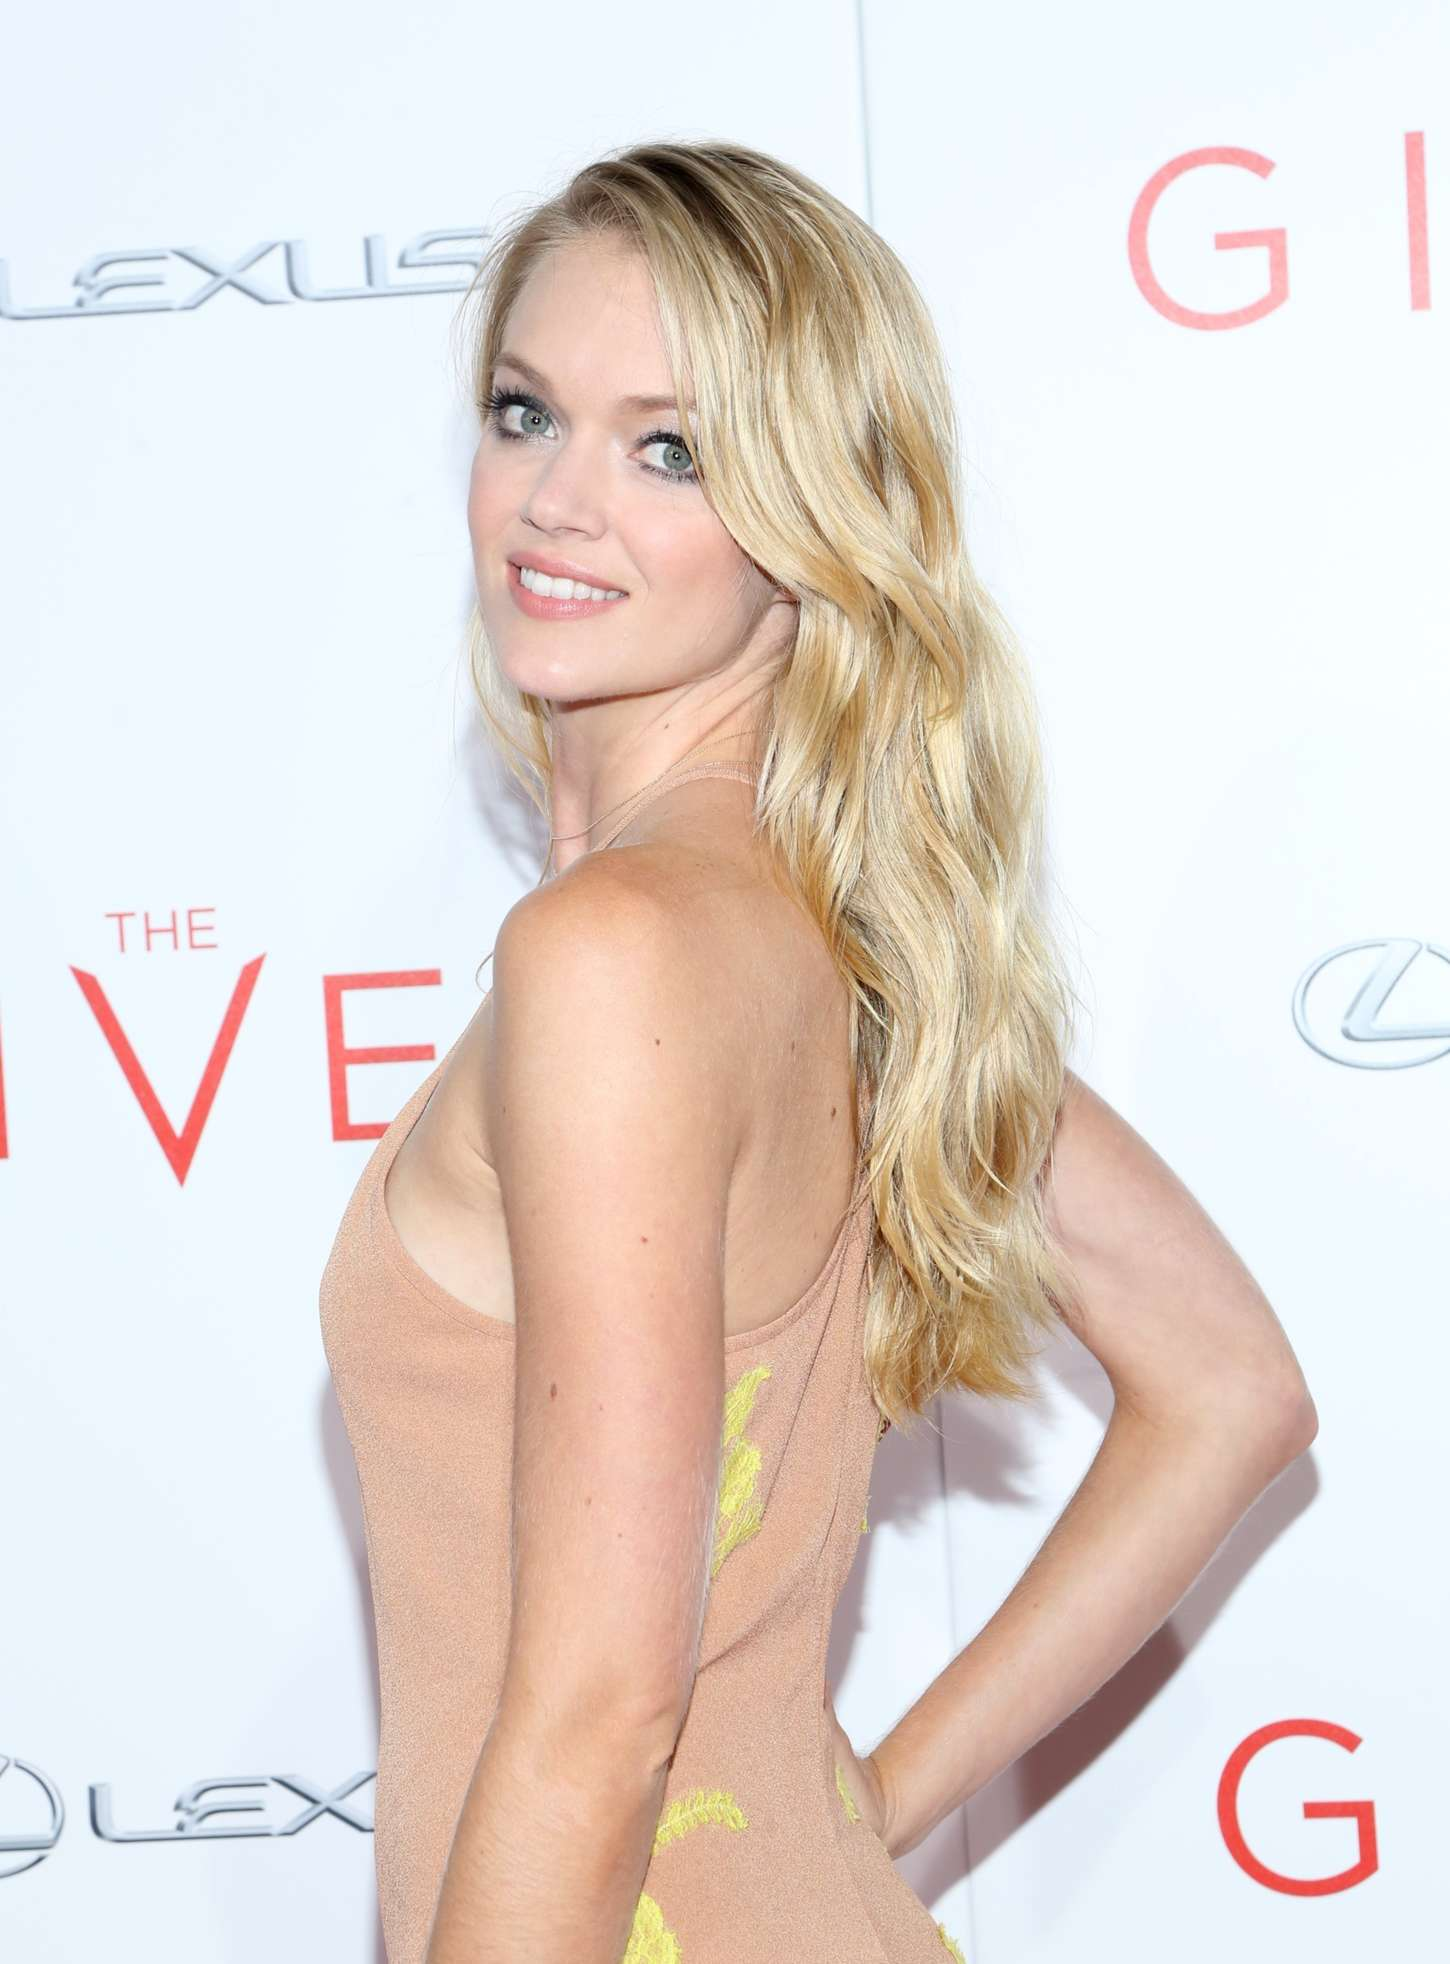 Lindsay Ellingson The Giver Premiere in New York